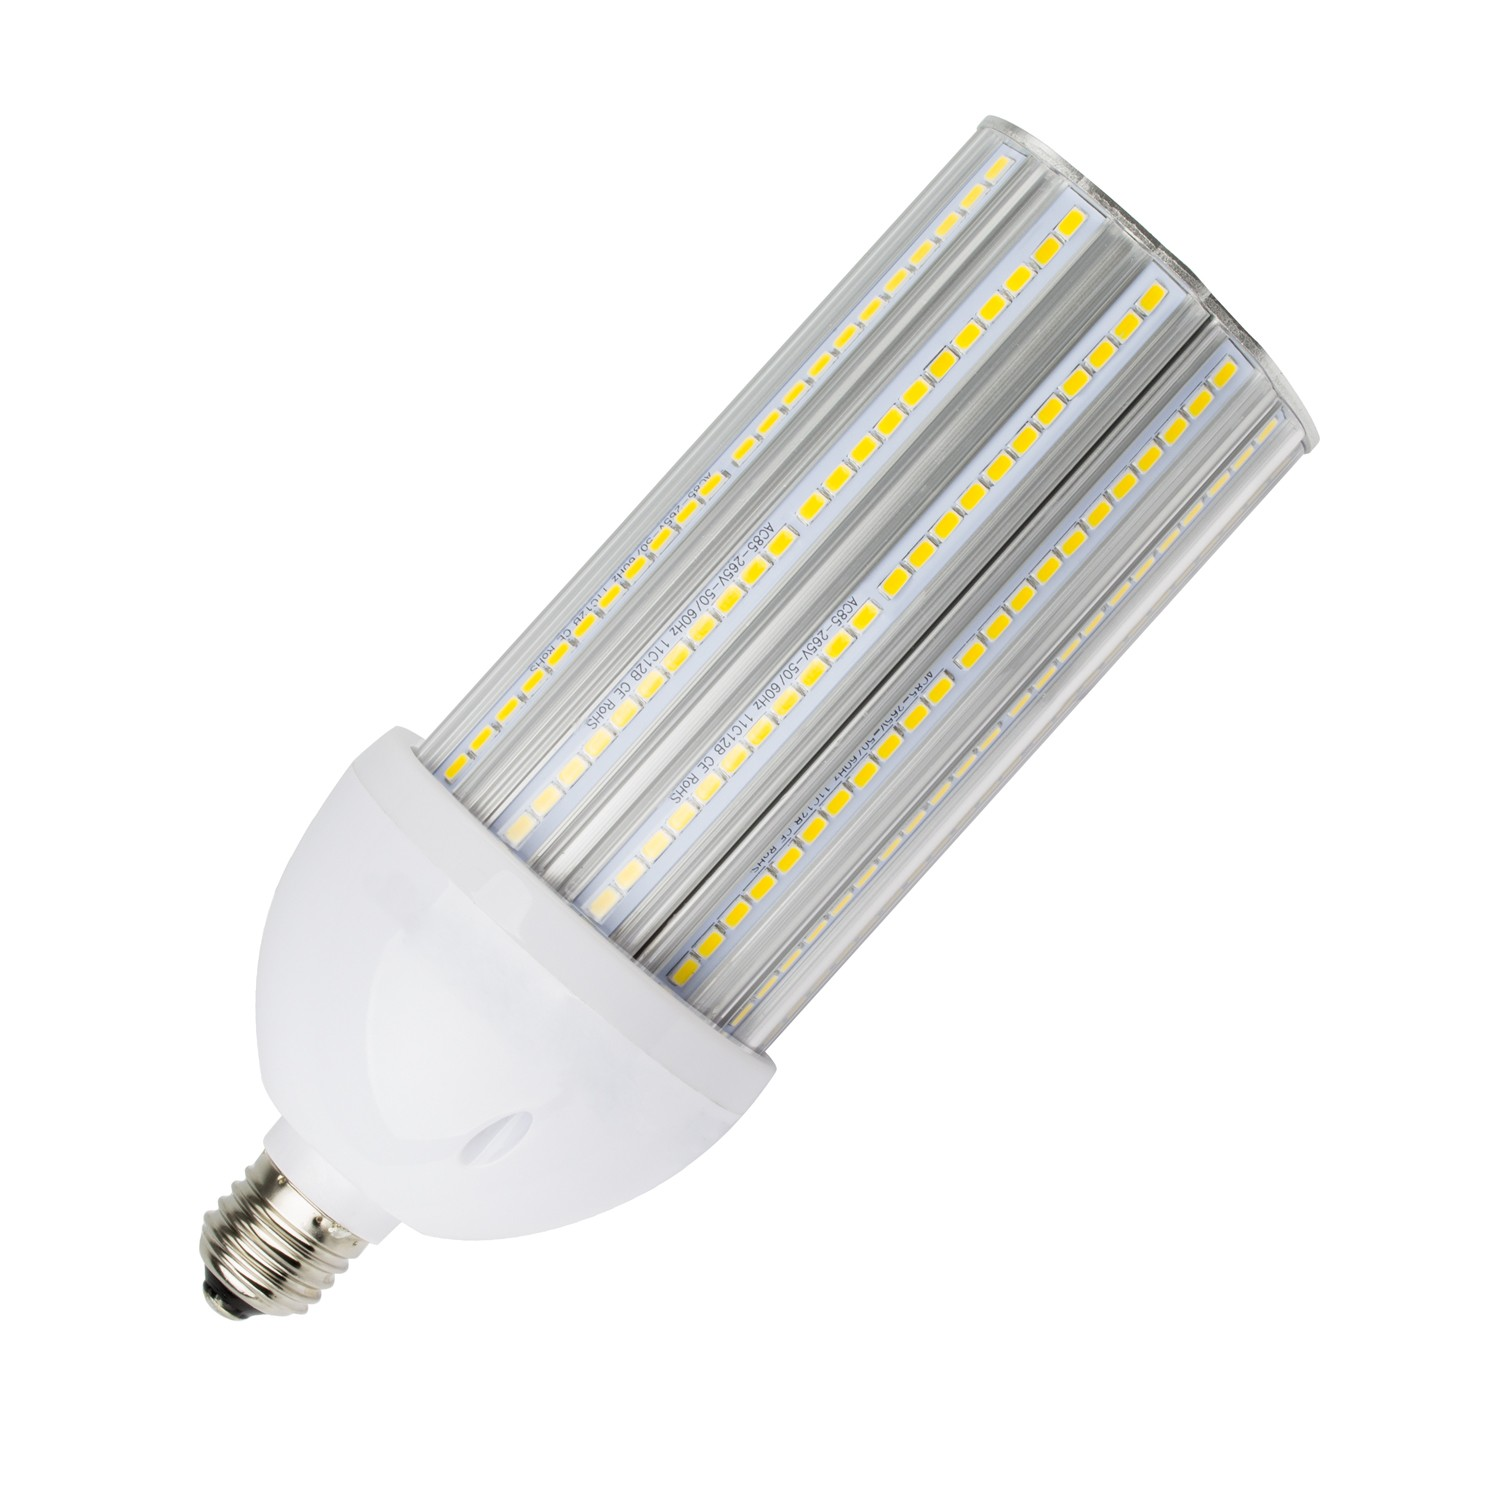 Lampe Led Eclairage Public Lampe Led Éclairage Public E27 40w Ip64 Ledkia